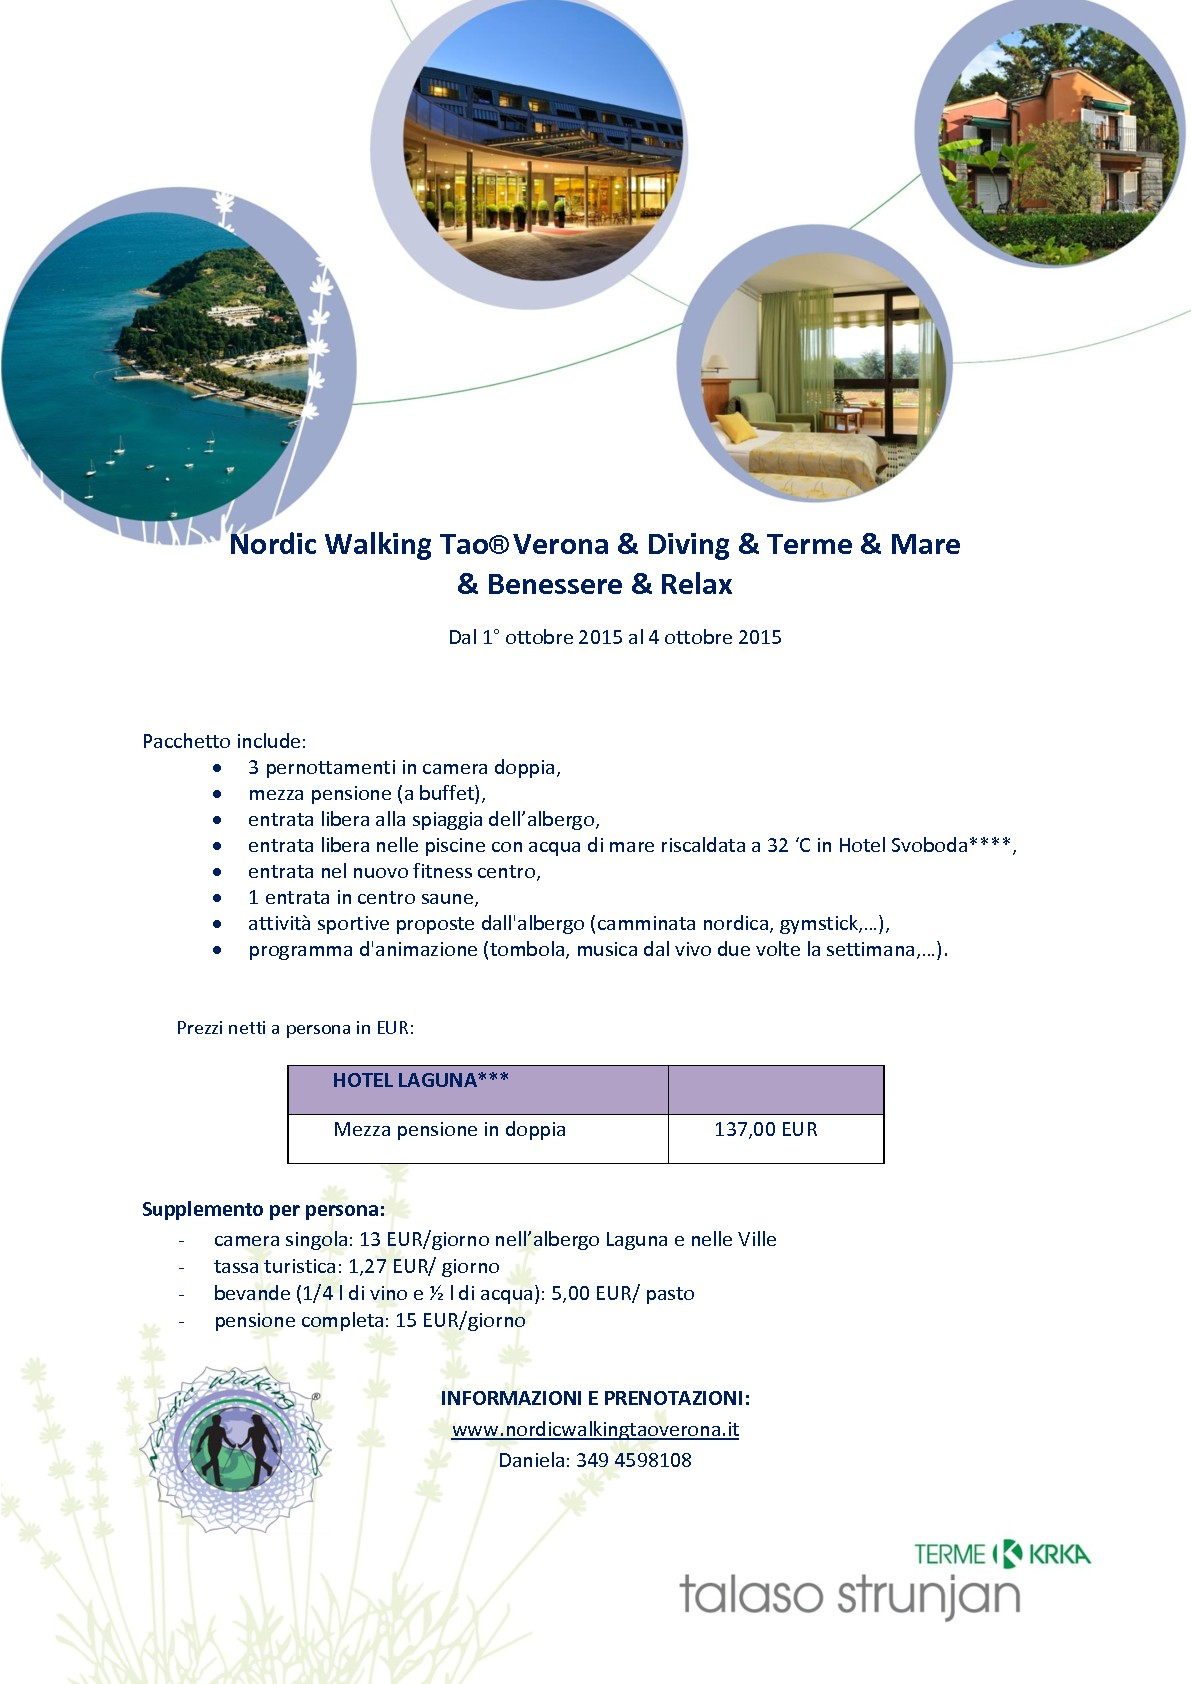 NordicWalking&Diving&Benessere&Relax-001-001